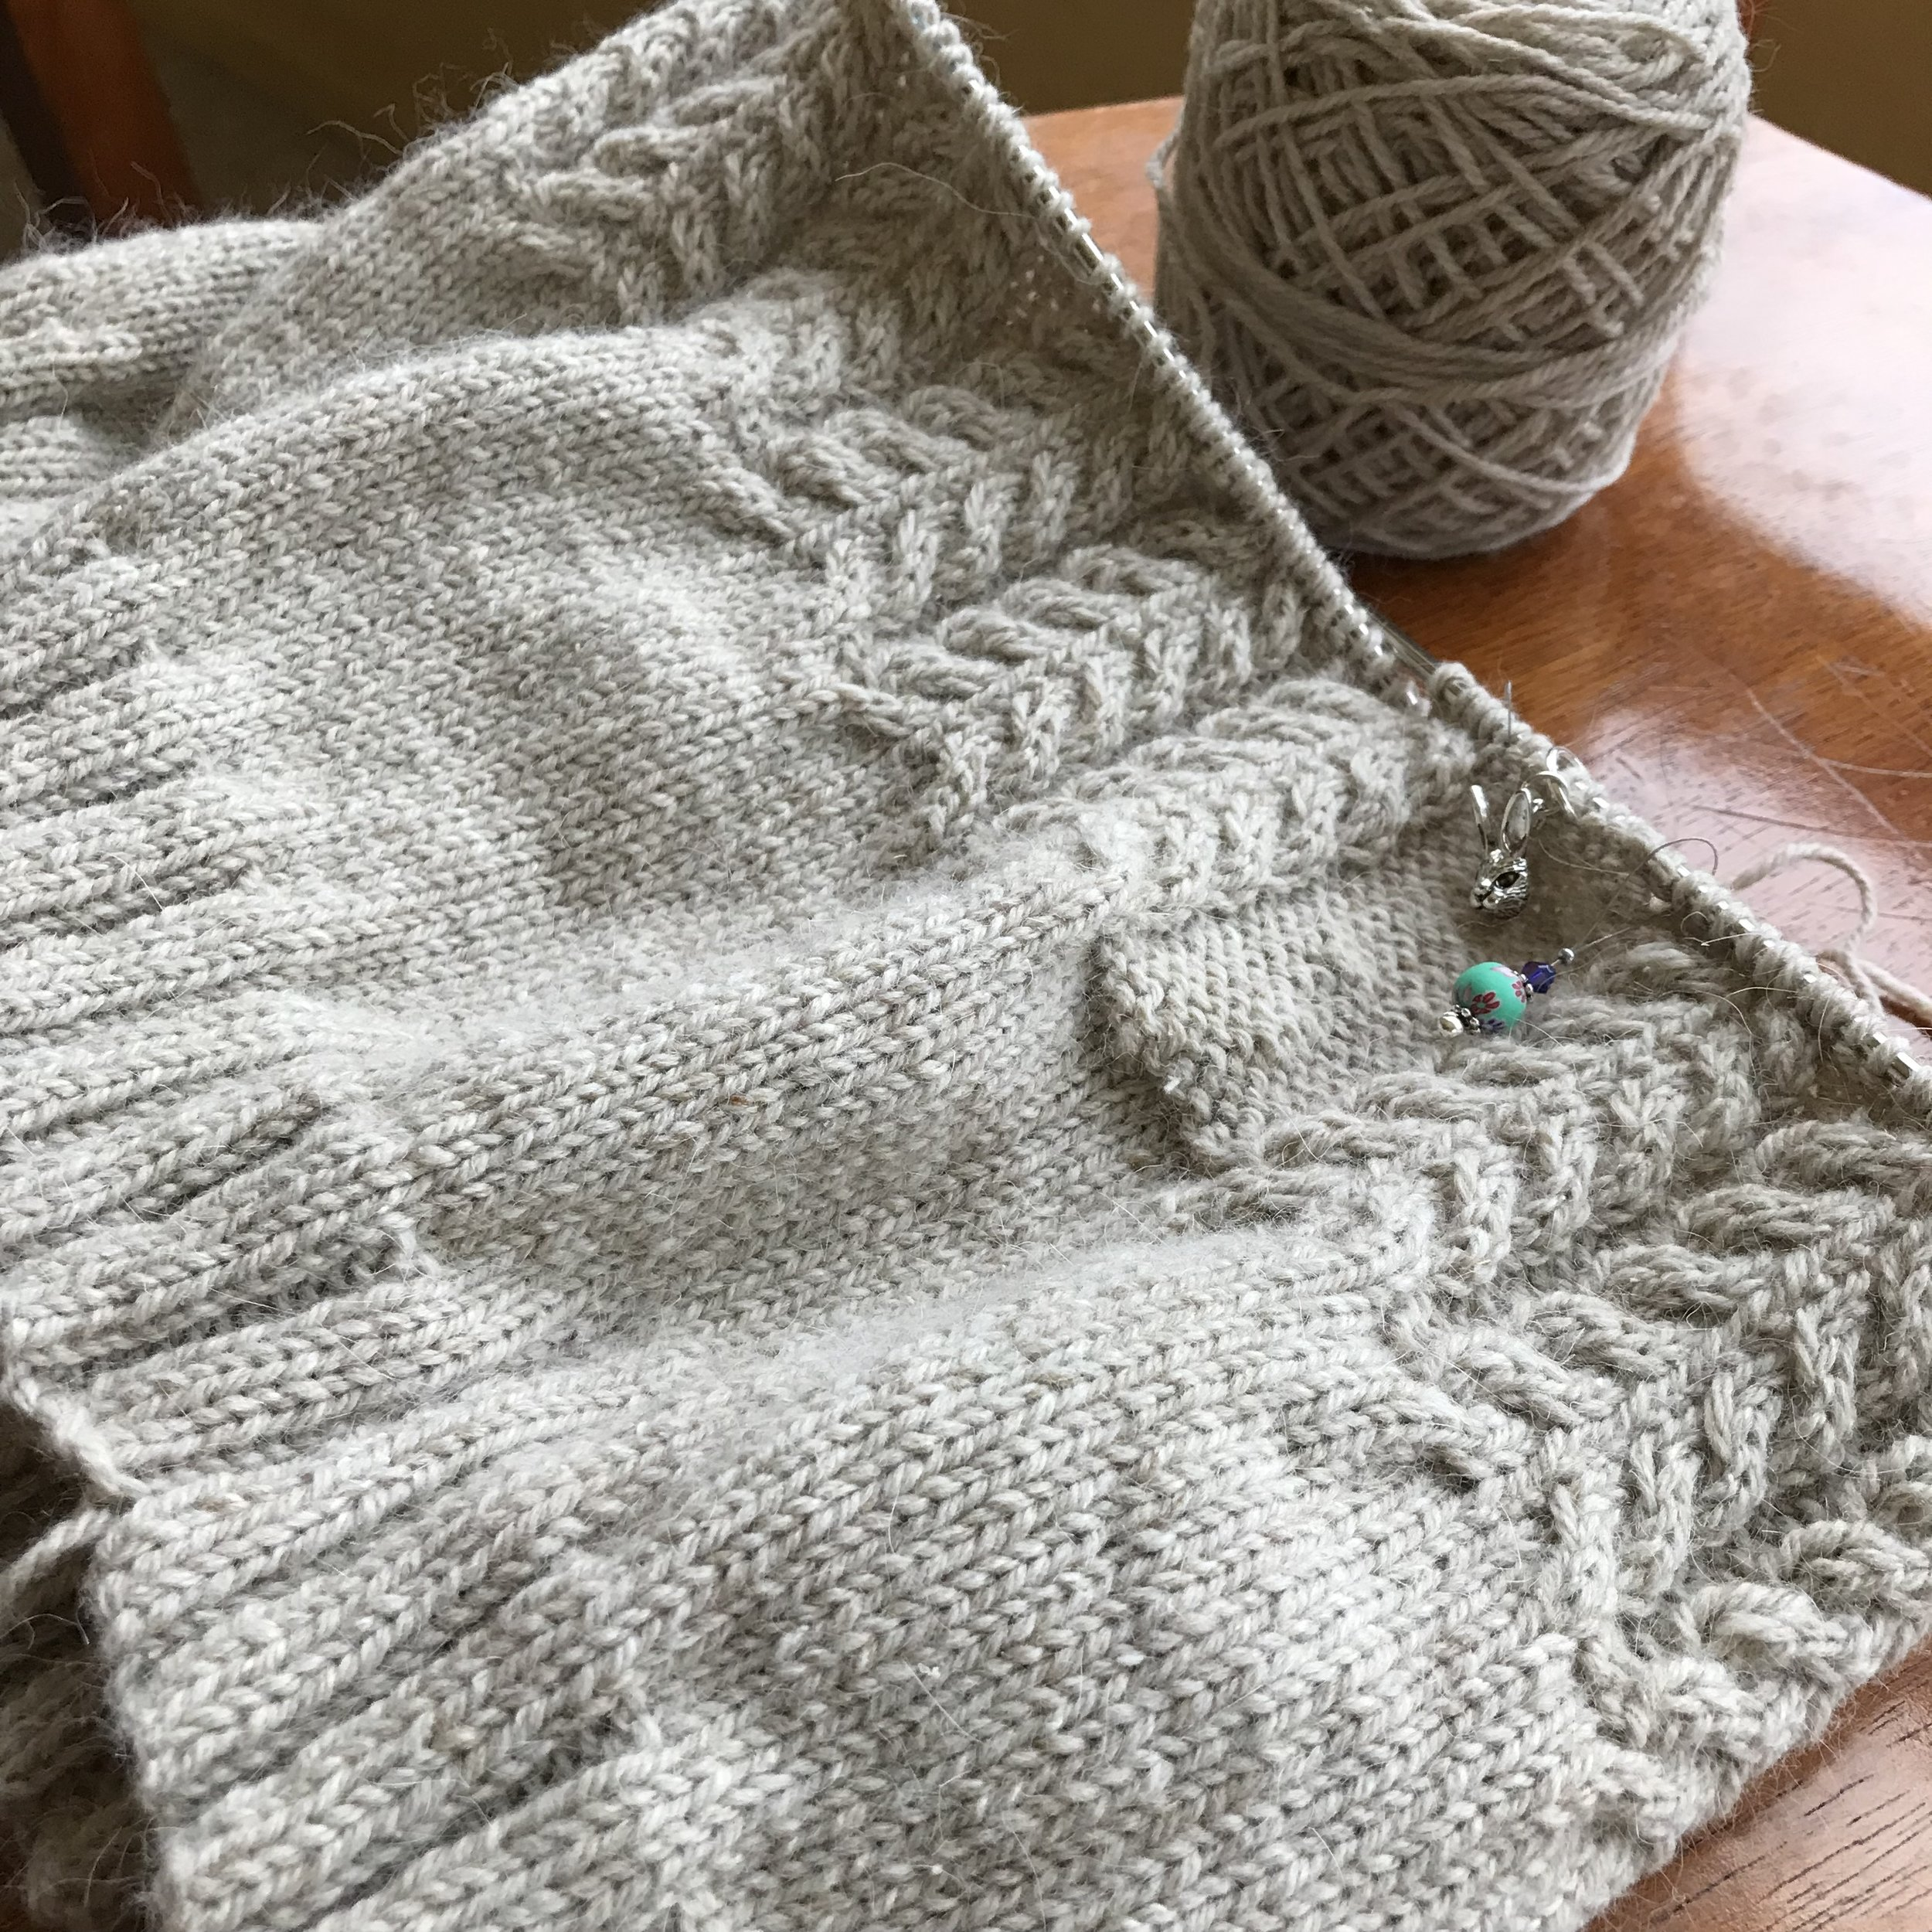 January Gansey - As part of the Winter Sweater KAL (every Friday, 5-7pm—join us!), I'm working on the January Gansey in Kenzie, color Pavlova, a slightly tweedy oatmeal color.This week, I knit well into the cabled body (this sweater is bottom-up, in the round up to the armholes). But I have plenty of cables ahead! Knit on US 3s to a gauge of 6 stitches per inch, this is a dense, warm fabric.